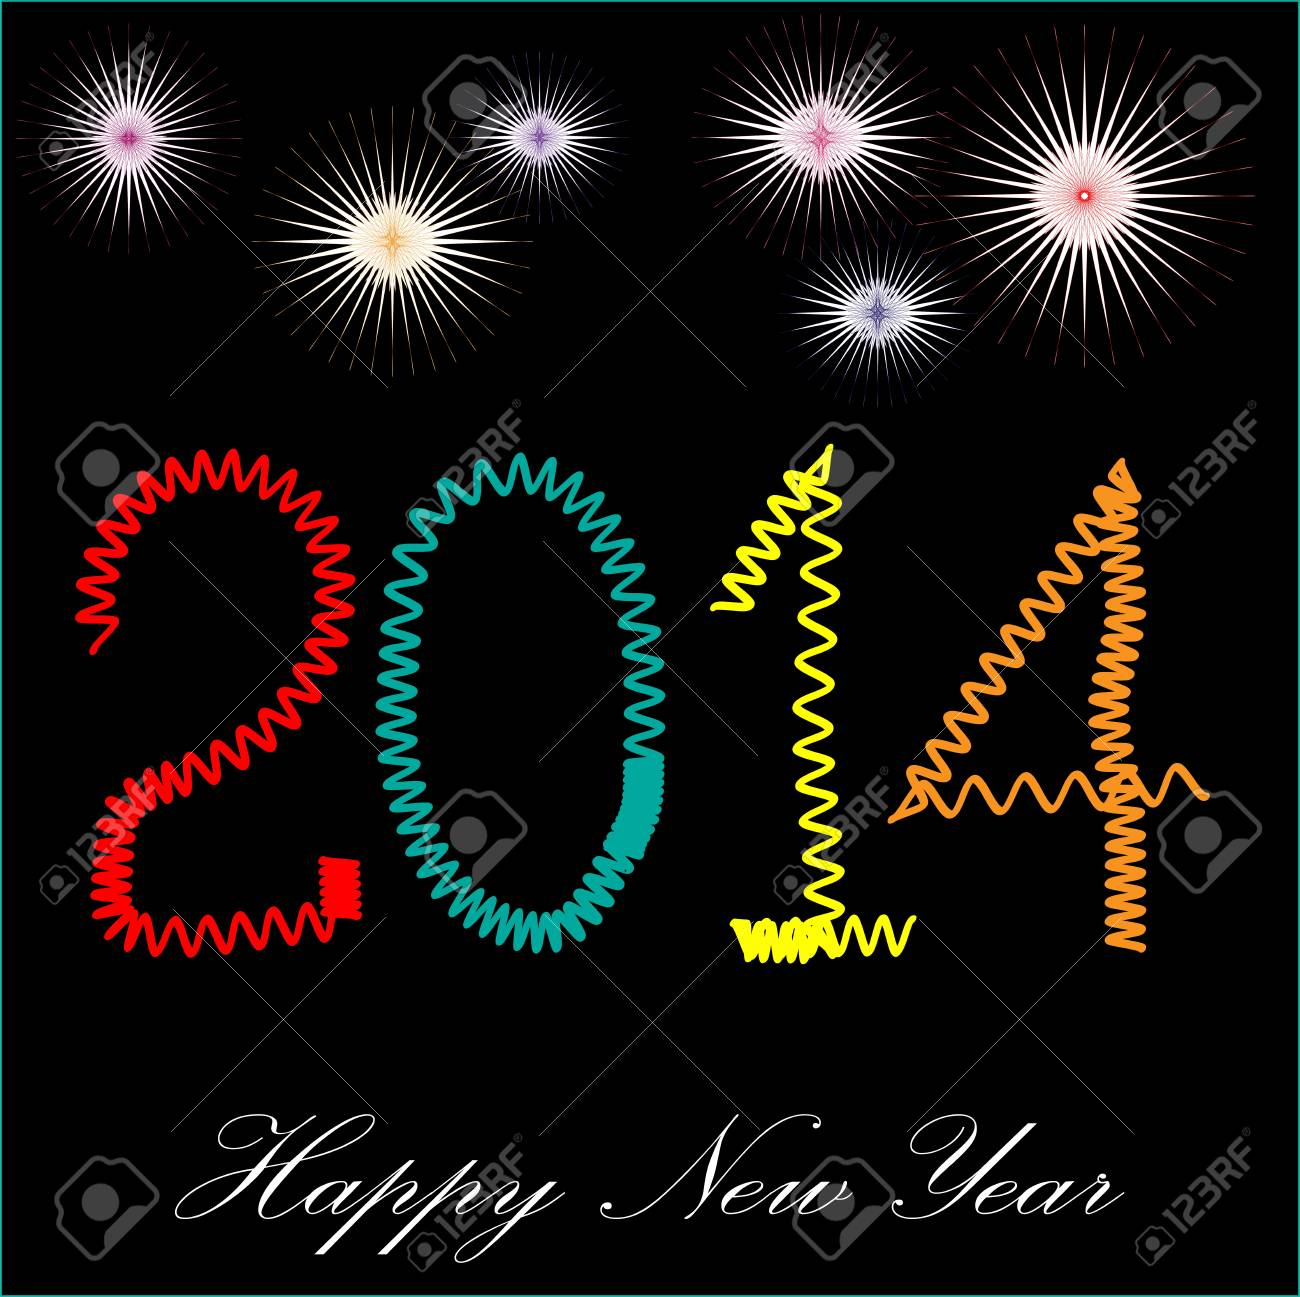 It is photo of celebration of coming new year 2014, created in illustrator CS5  Individual layer are created for easy use Stock Vector - 18302446